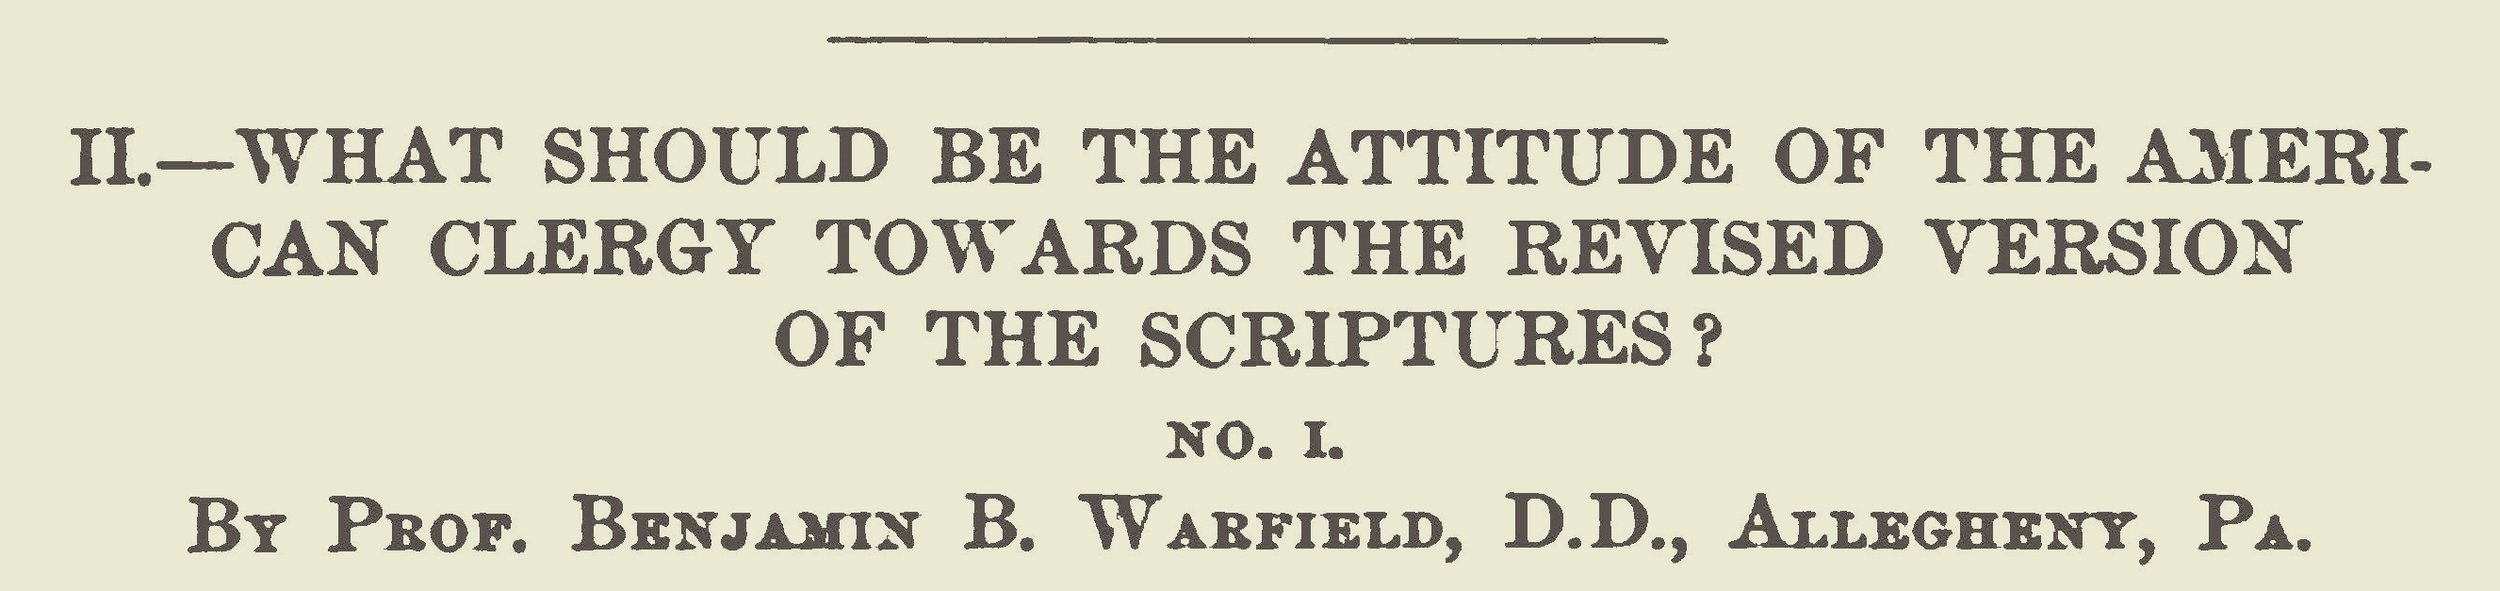 Warfield, Benjamin Breckinridge, What Should Be the Attitude of the American Clergy Title Page.jpg